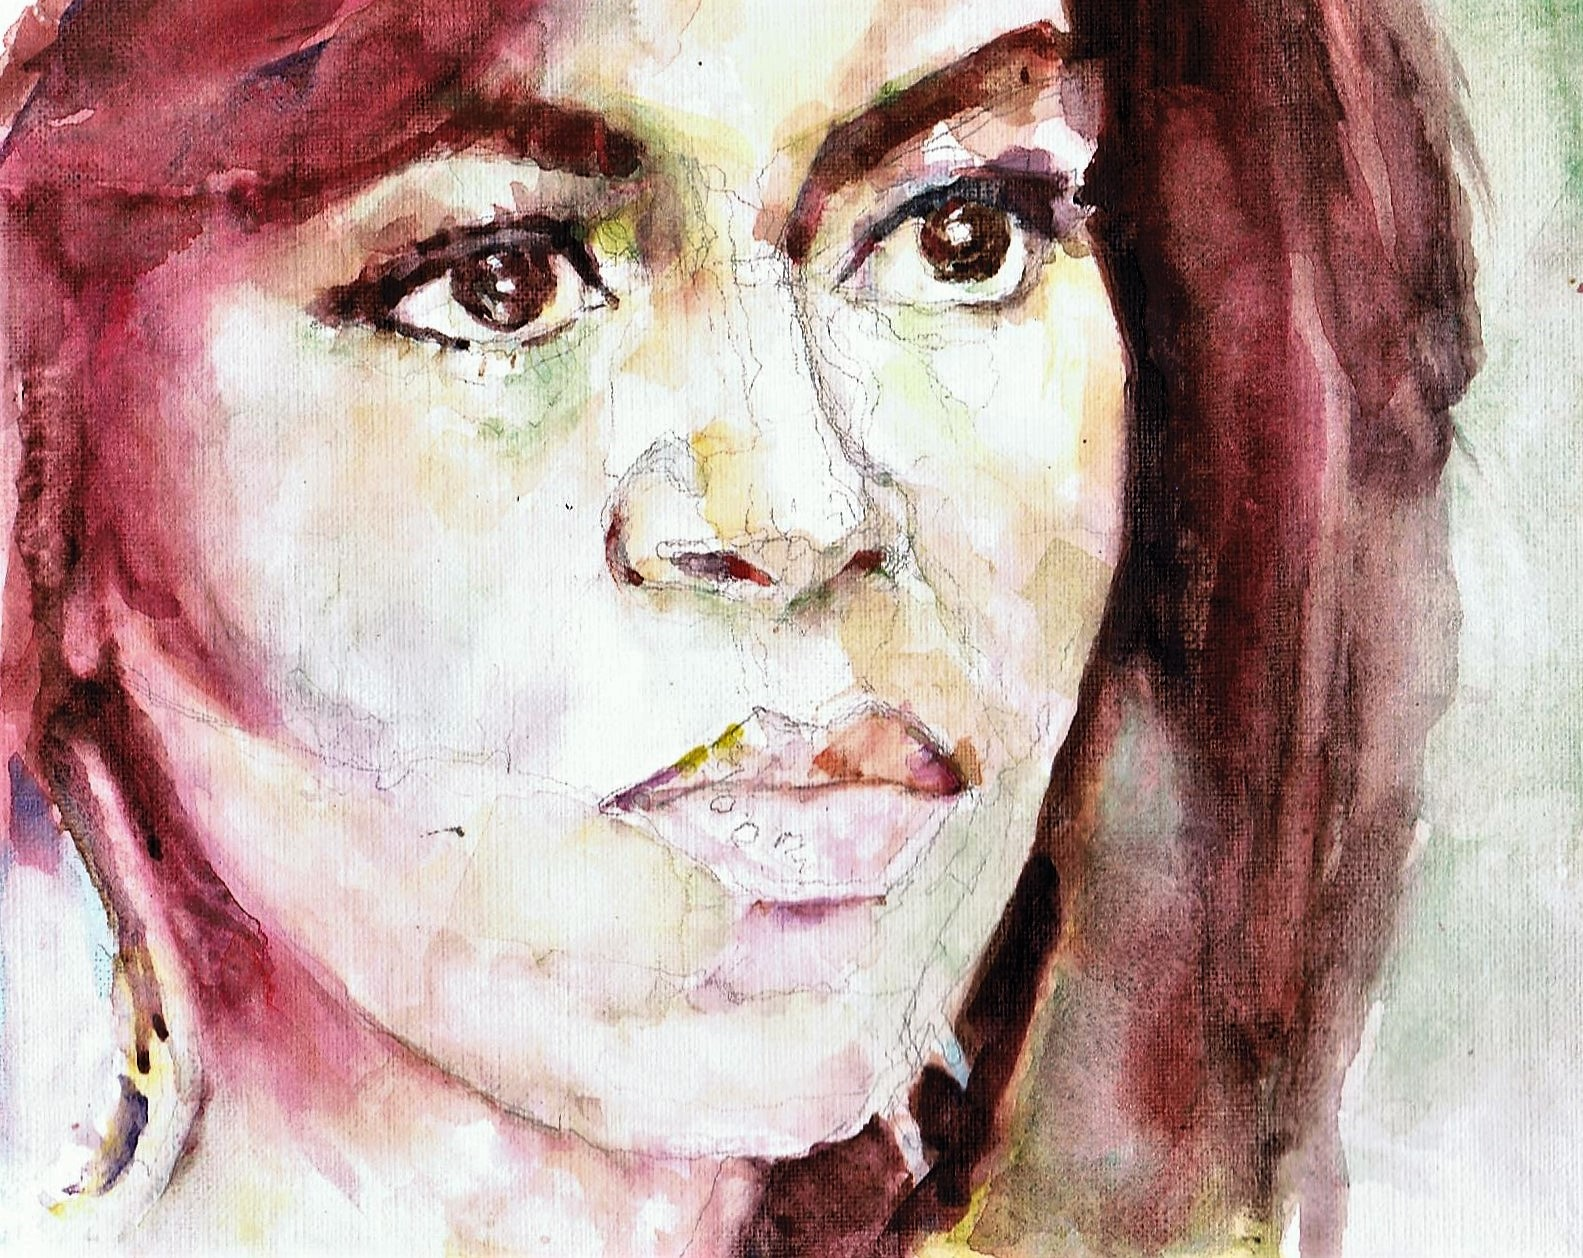 365 dagen een portret Michelle Obama, First Lady VS Aquarel 19c25